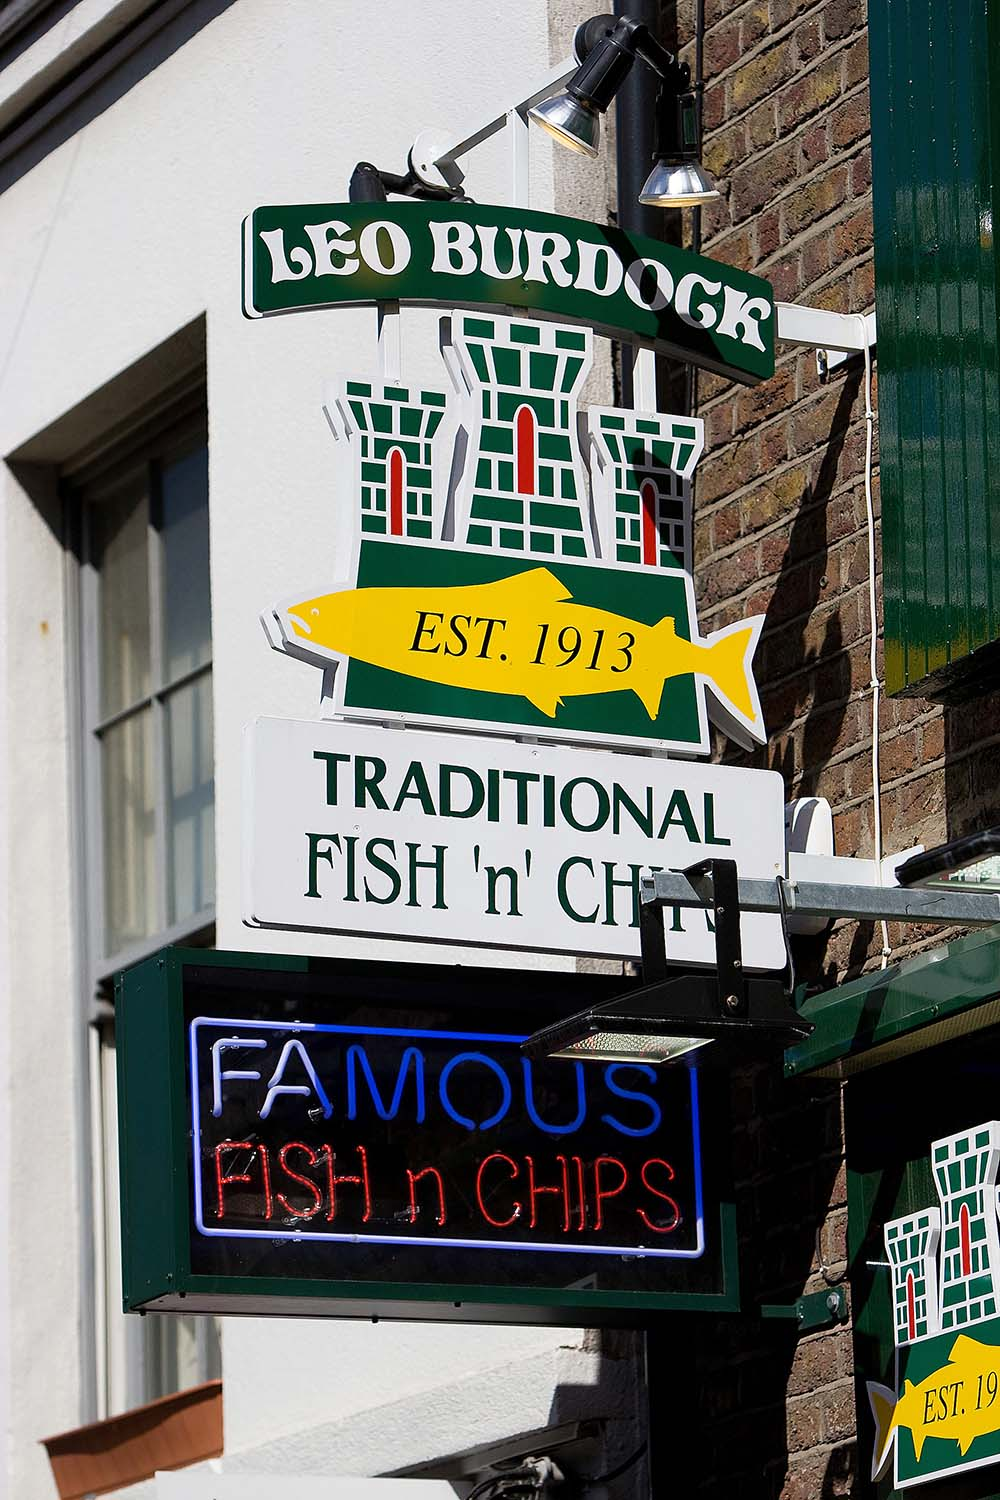 Leo Burdoch Fish and Chips